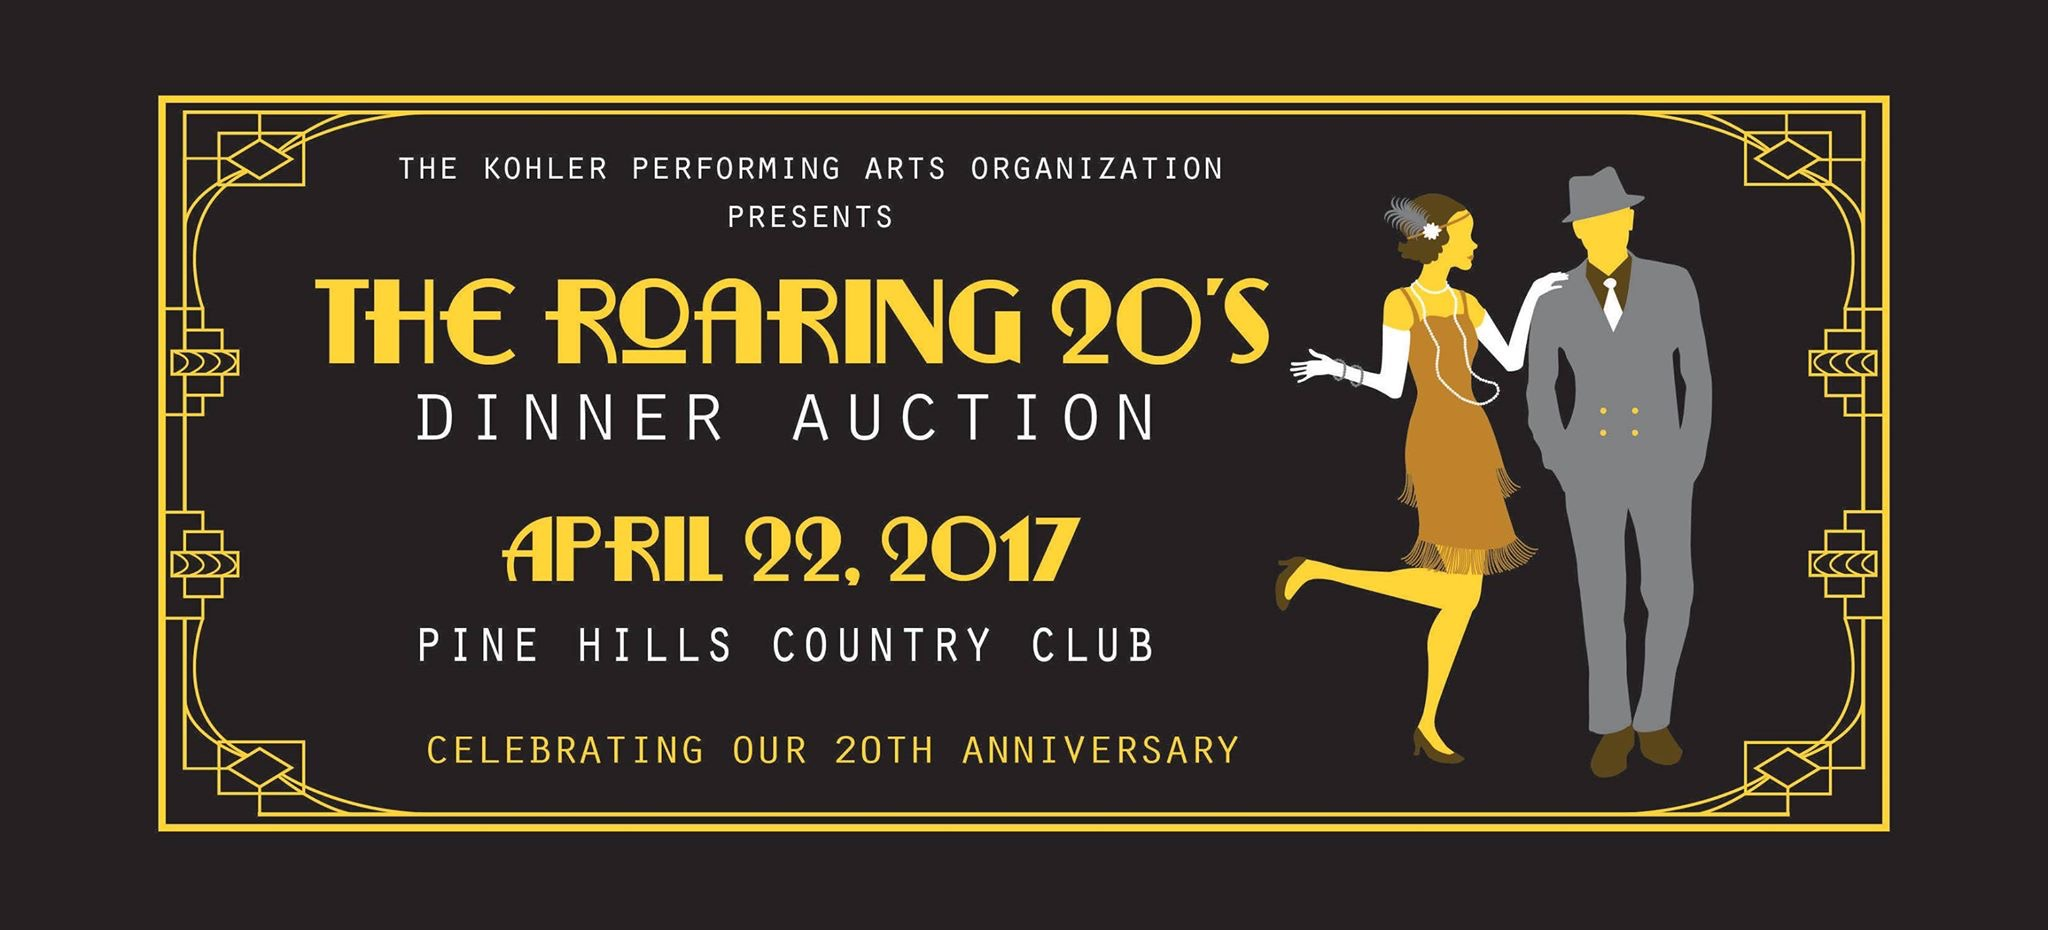 The Roaring 20's Dinner Auction - April 22, 2017, Pine Hills Country Club